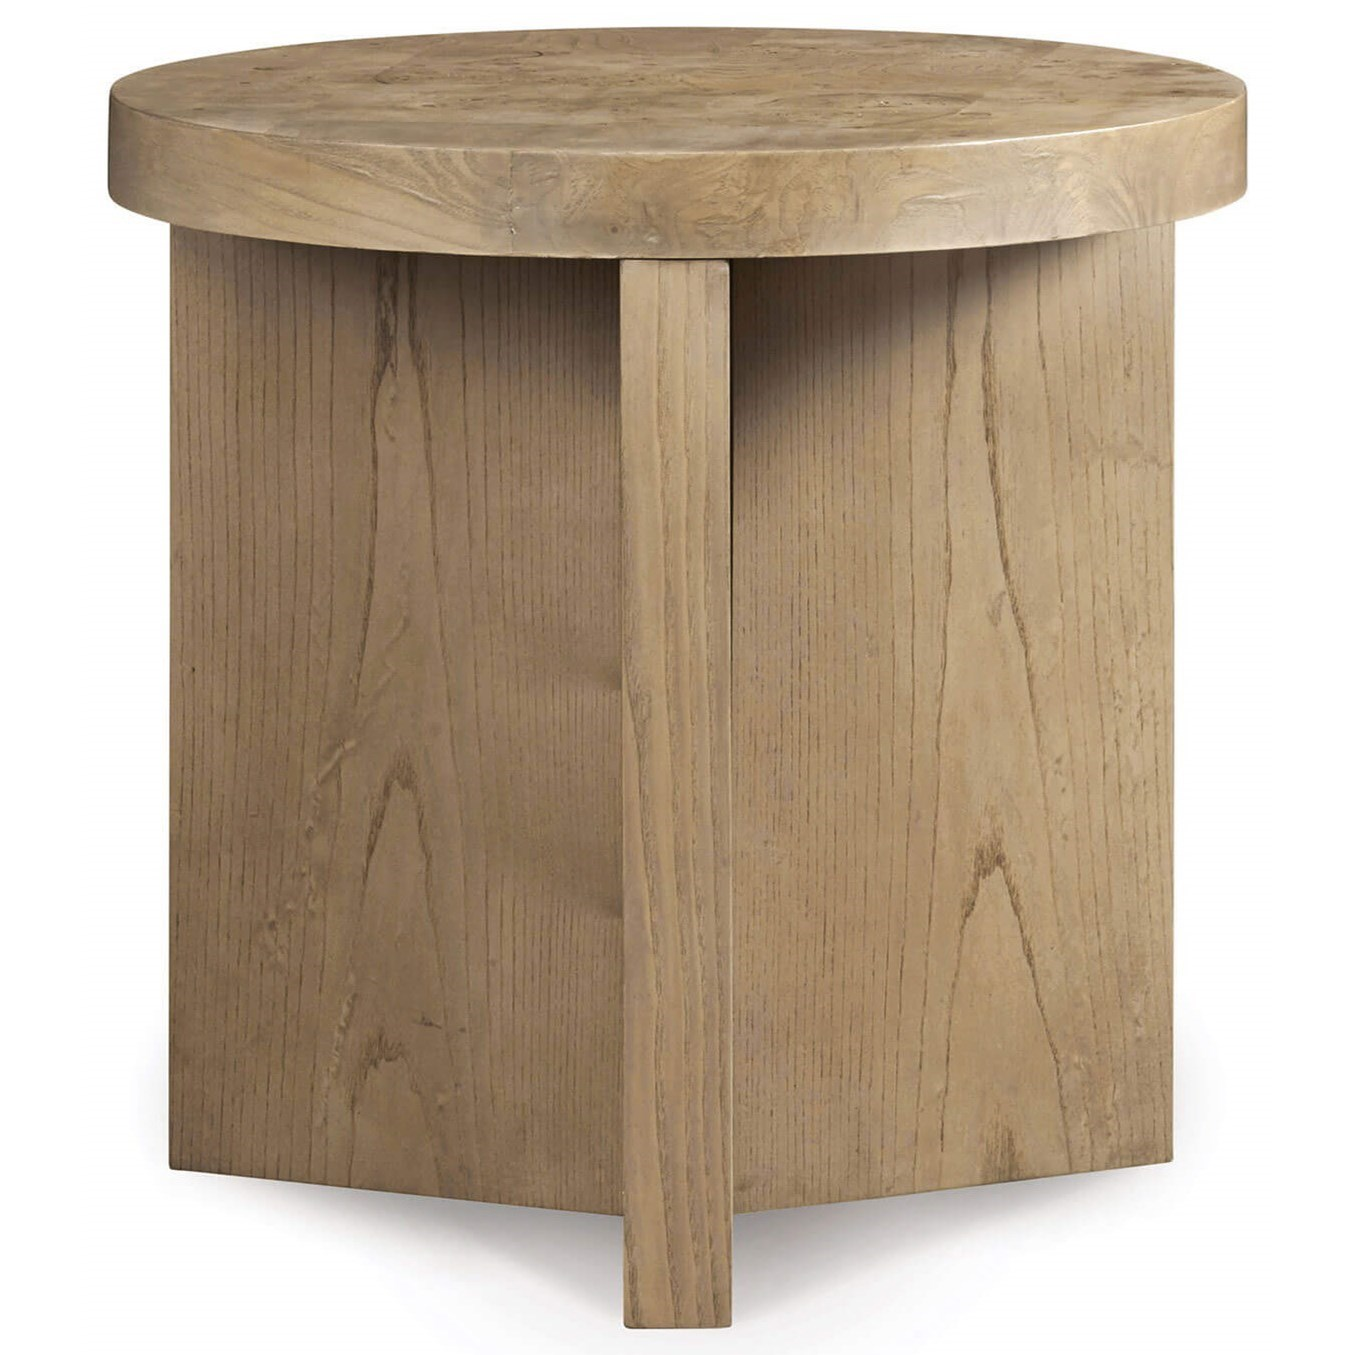 Annex End Table by Palliser at Stoney Creek Furniture